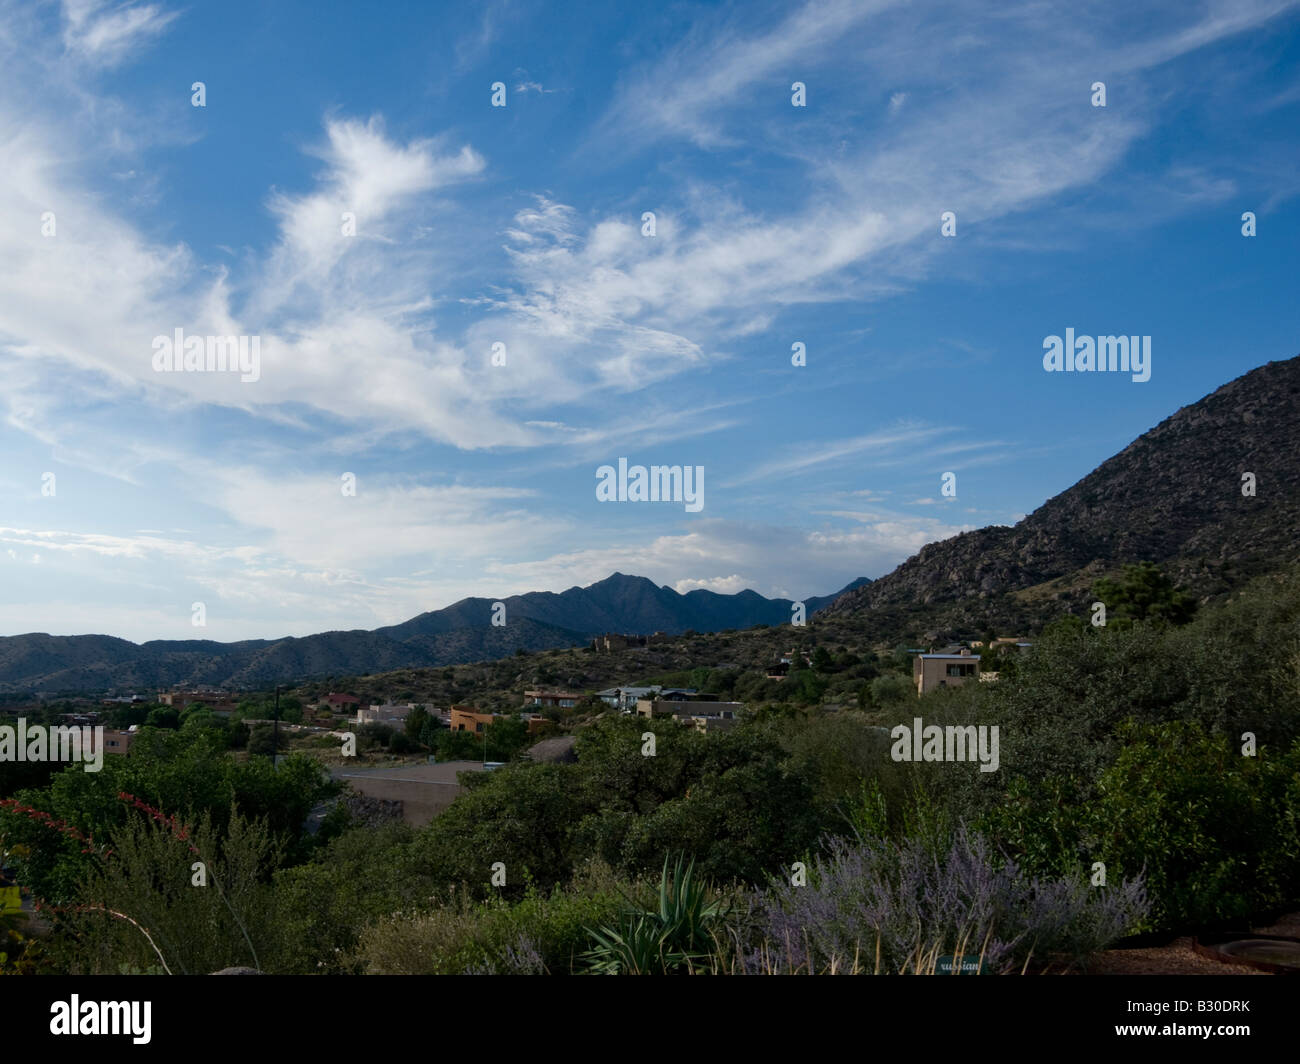 Residential houses at the foothills of the Sandia Mountains - Stock Image